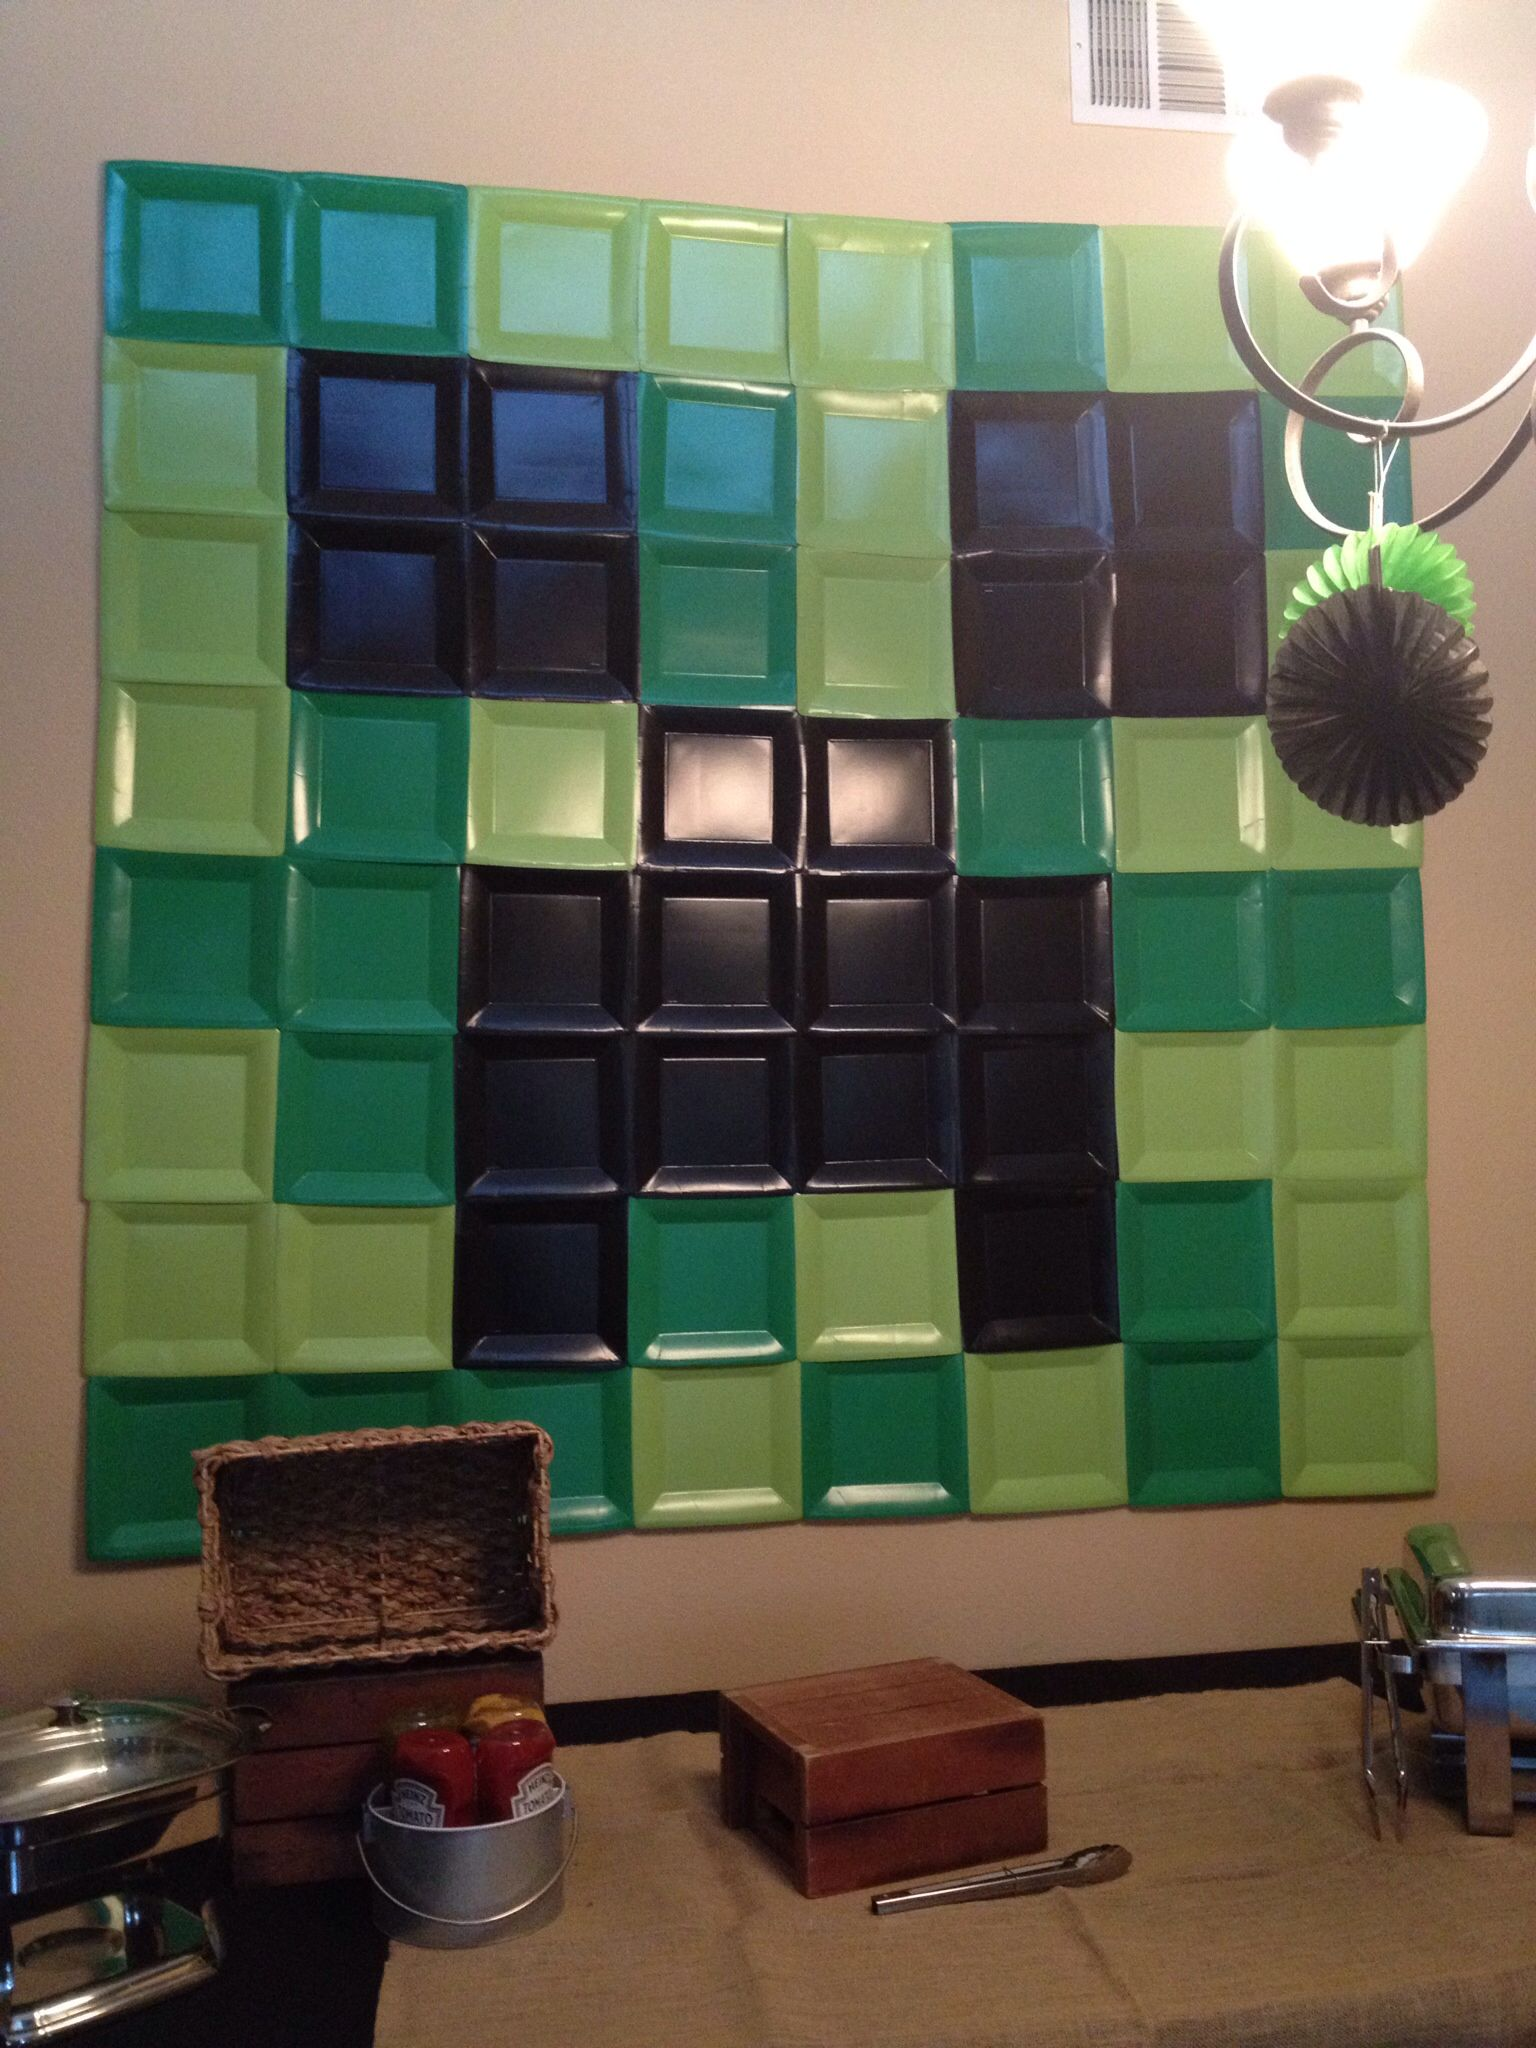 Minecraft backdrop. I used 10 1/2 inch square plates from ...Steve Minecraft Costume Party City